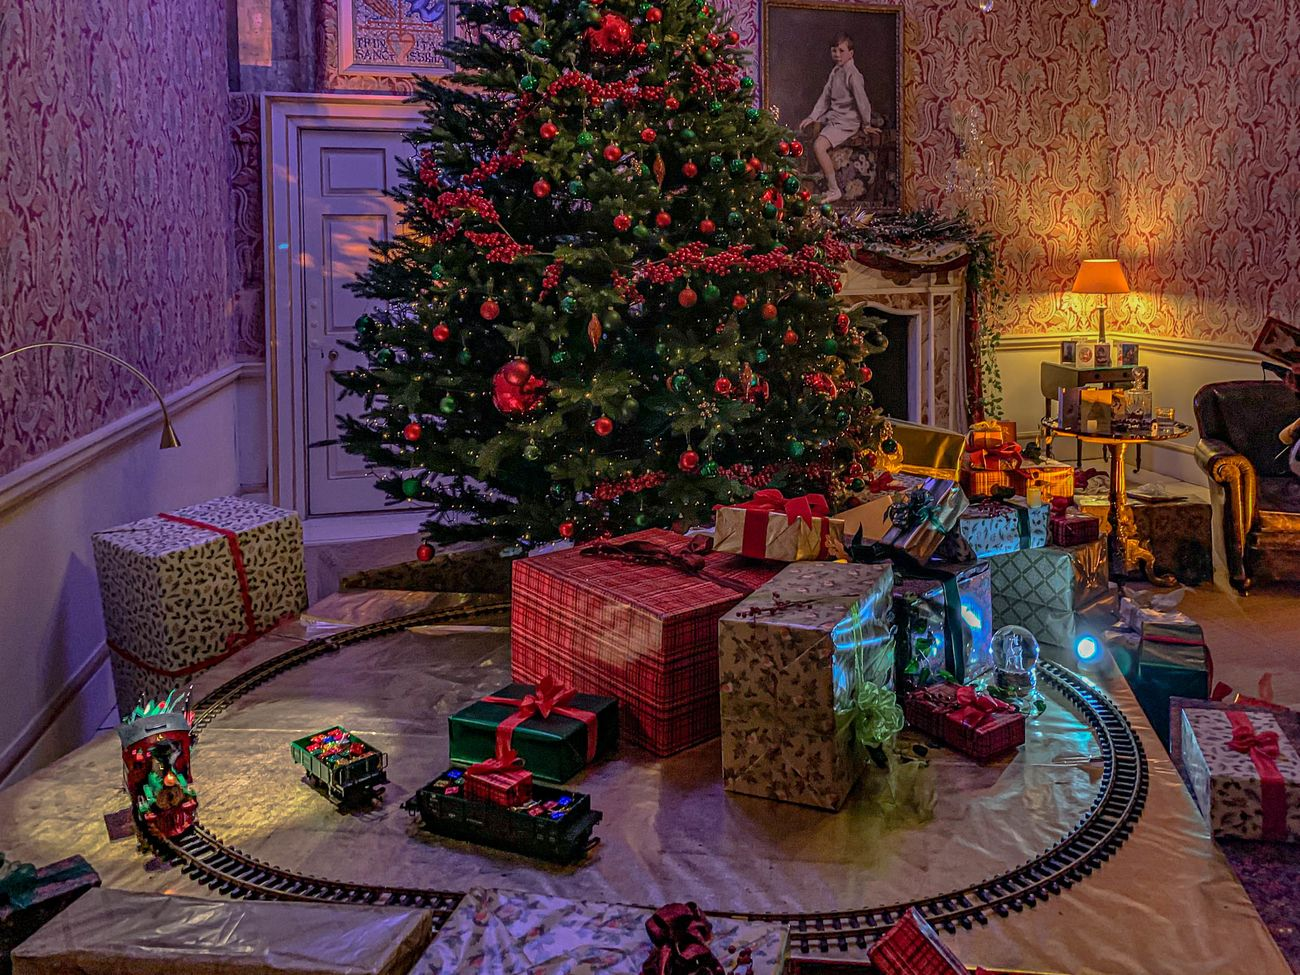 Christmas tree and presents in a playroom